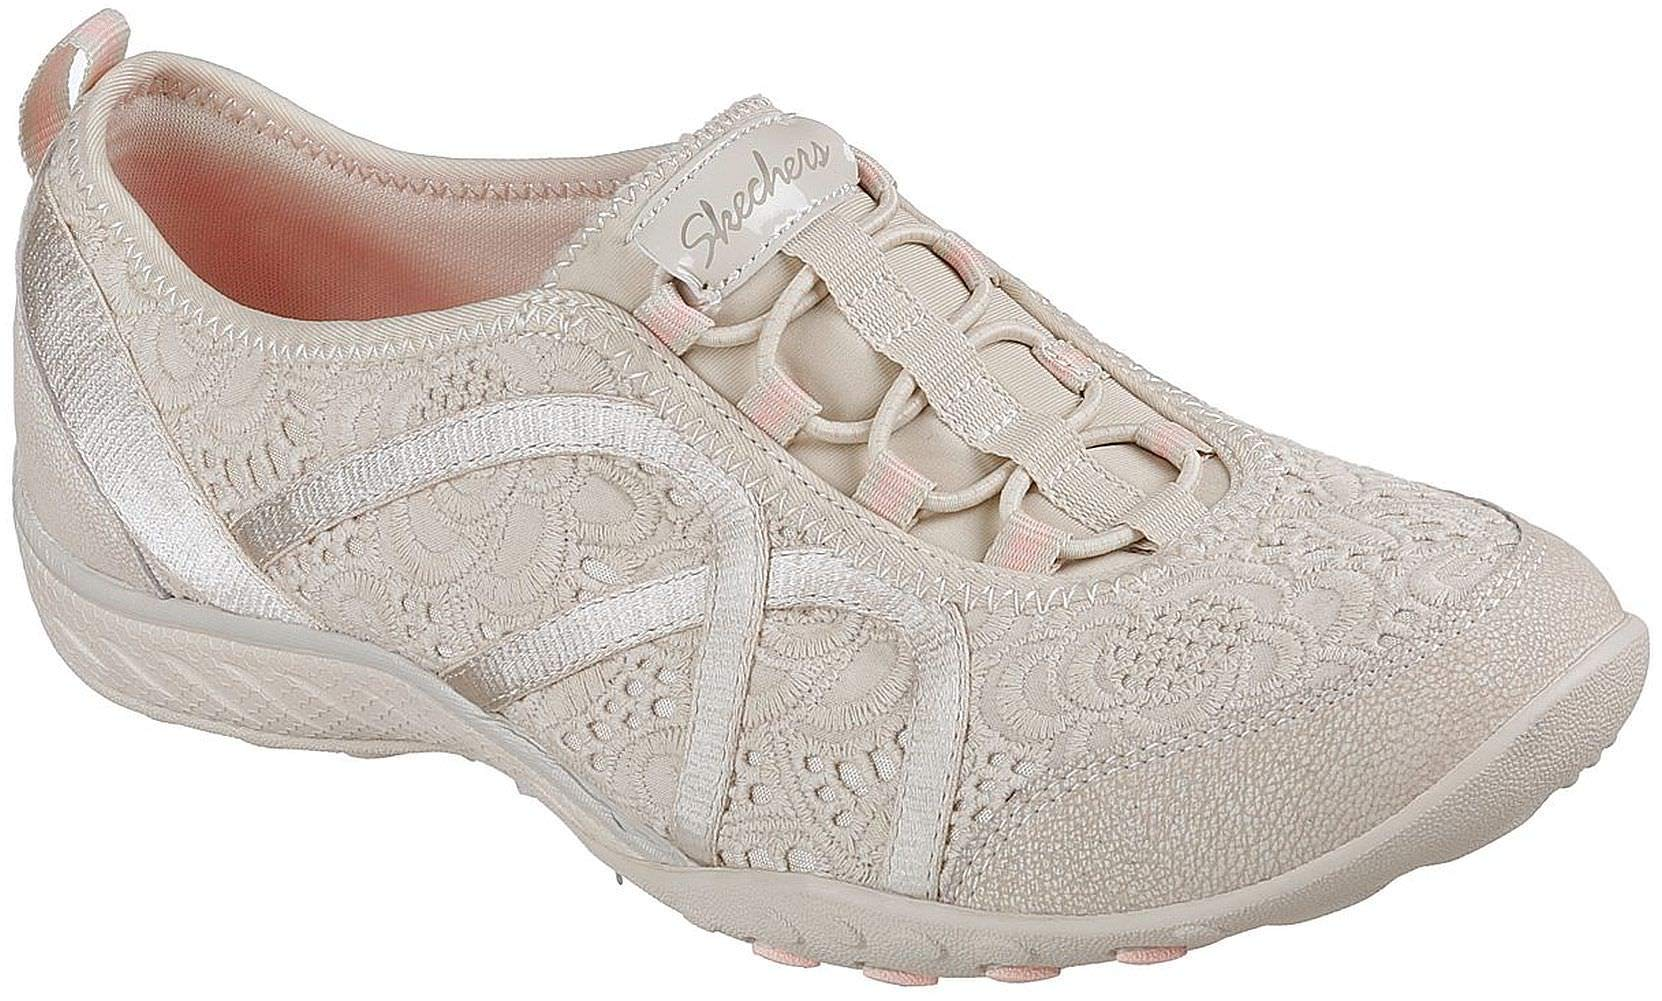 9a1db78536cf Skechers Sport Women s Breathe Easy Fortune Fashion Sneaker product image